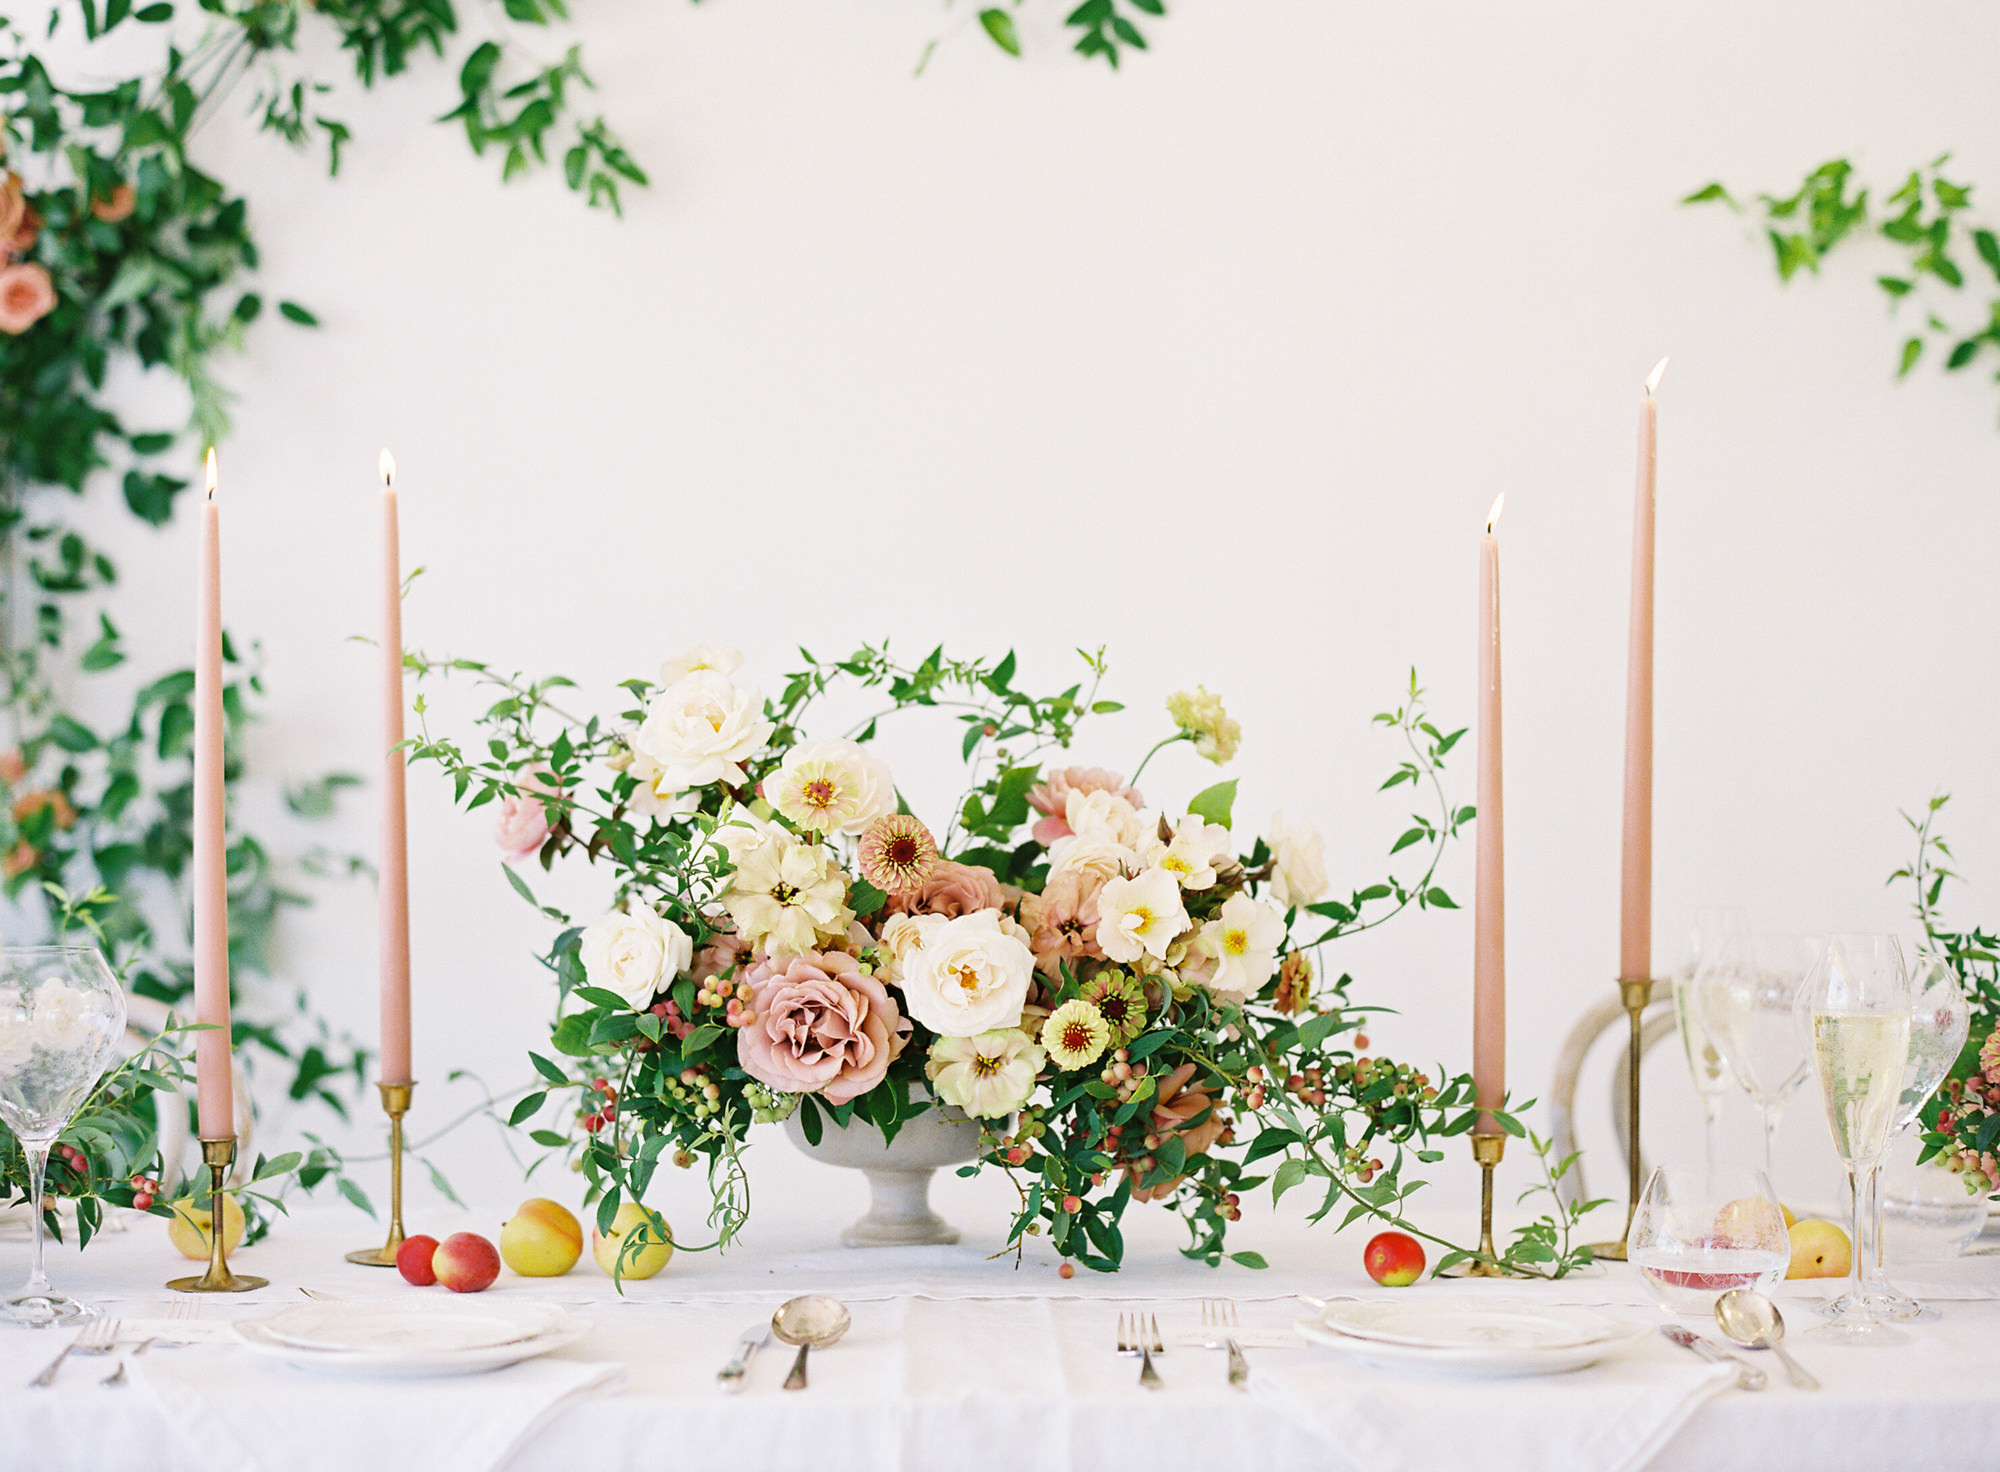 Floral centerpiece ivy blush roses and blush candlesticks Jen Huang Los Angeles wedding photographer